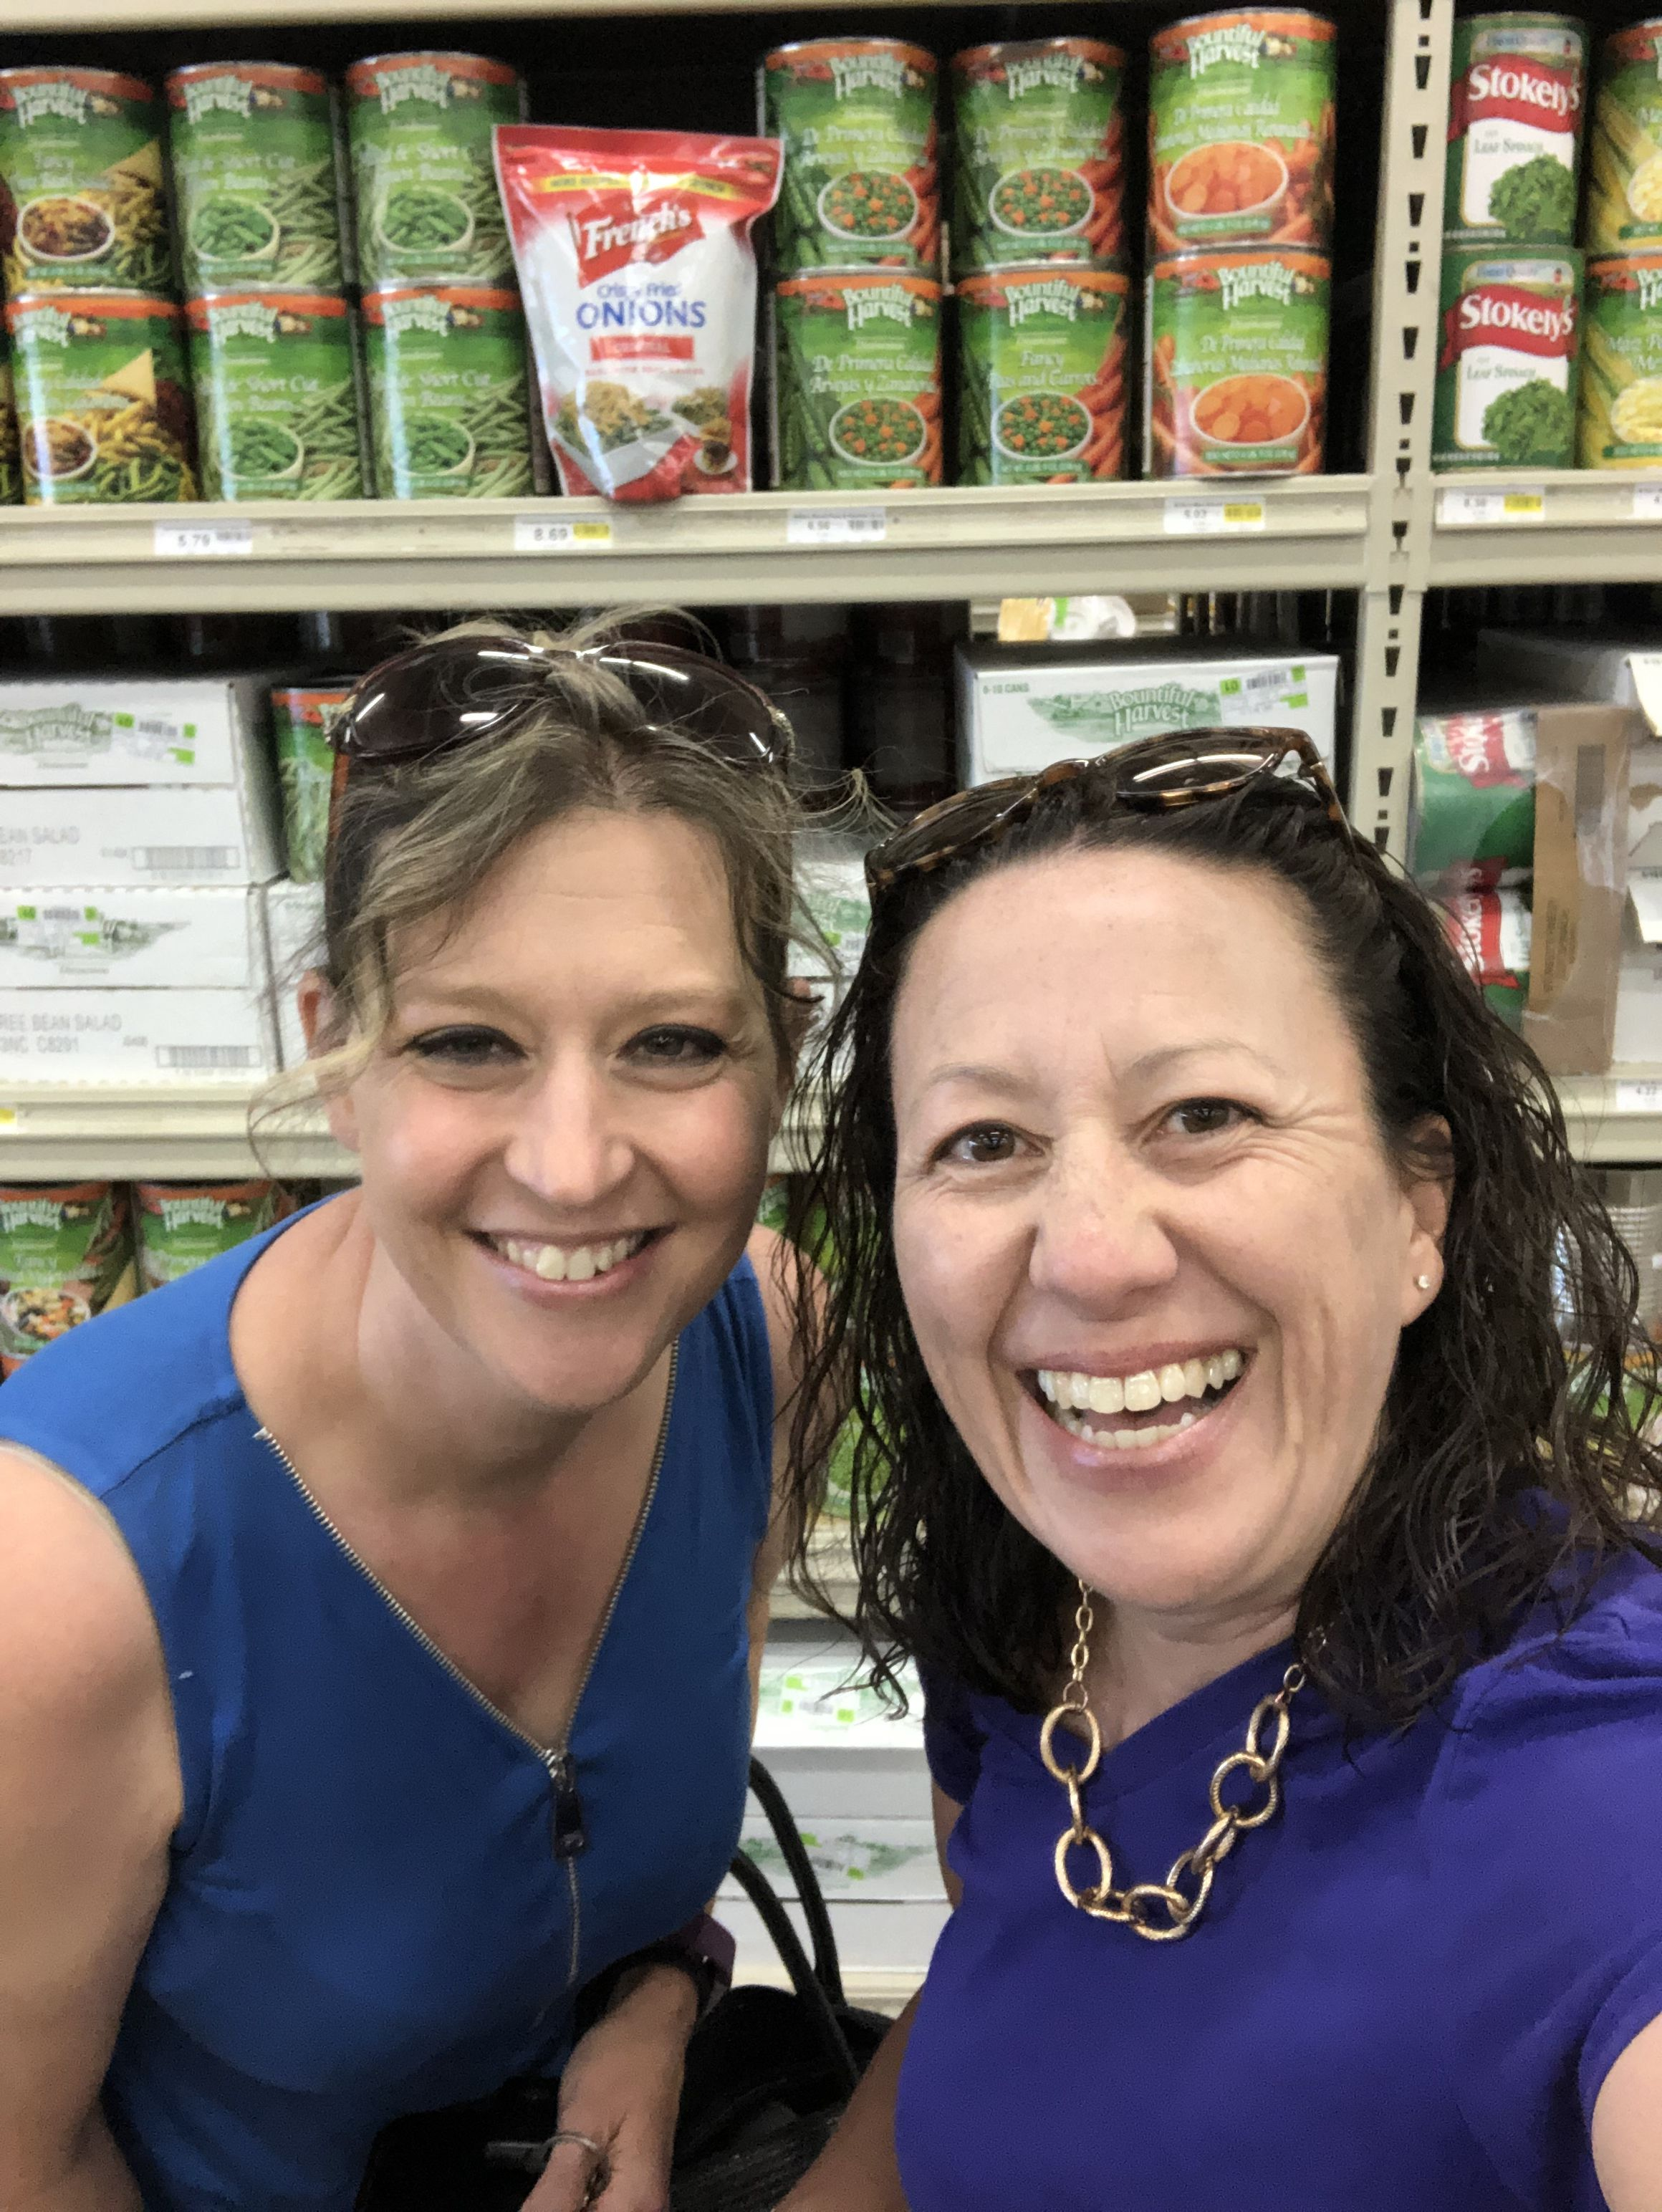 Here we are! 2 volunteer committee members shopping for ...